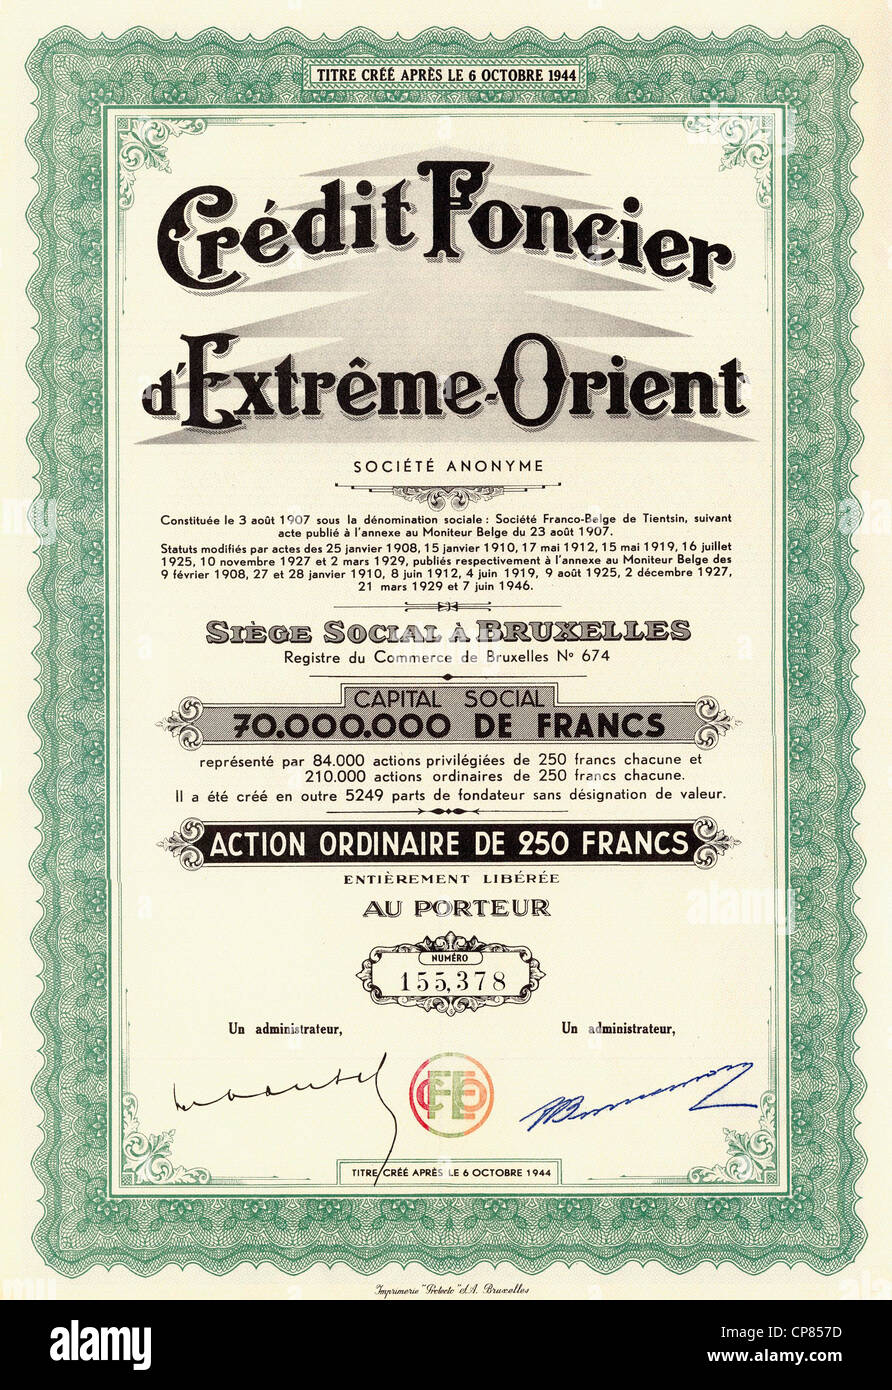 Historic Stock Certificate Banking And Finance Credit Foncier